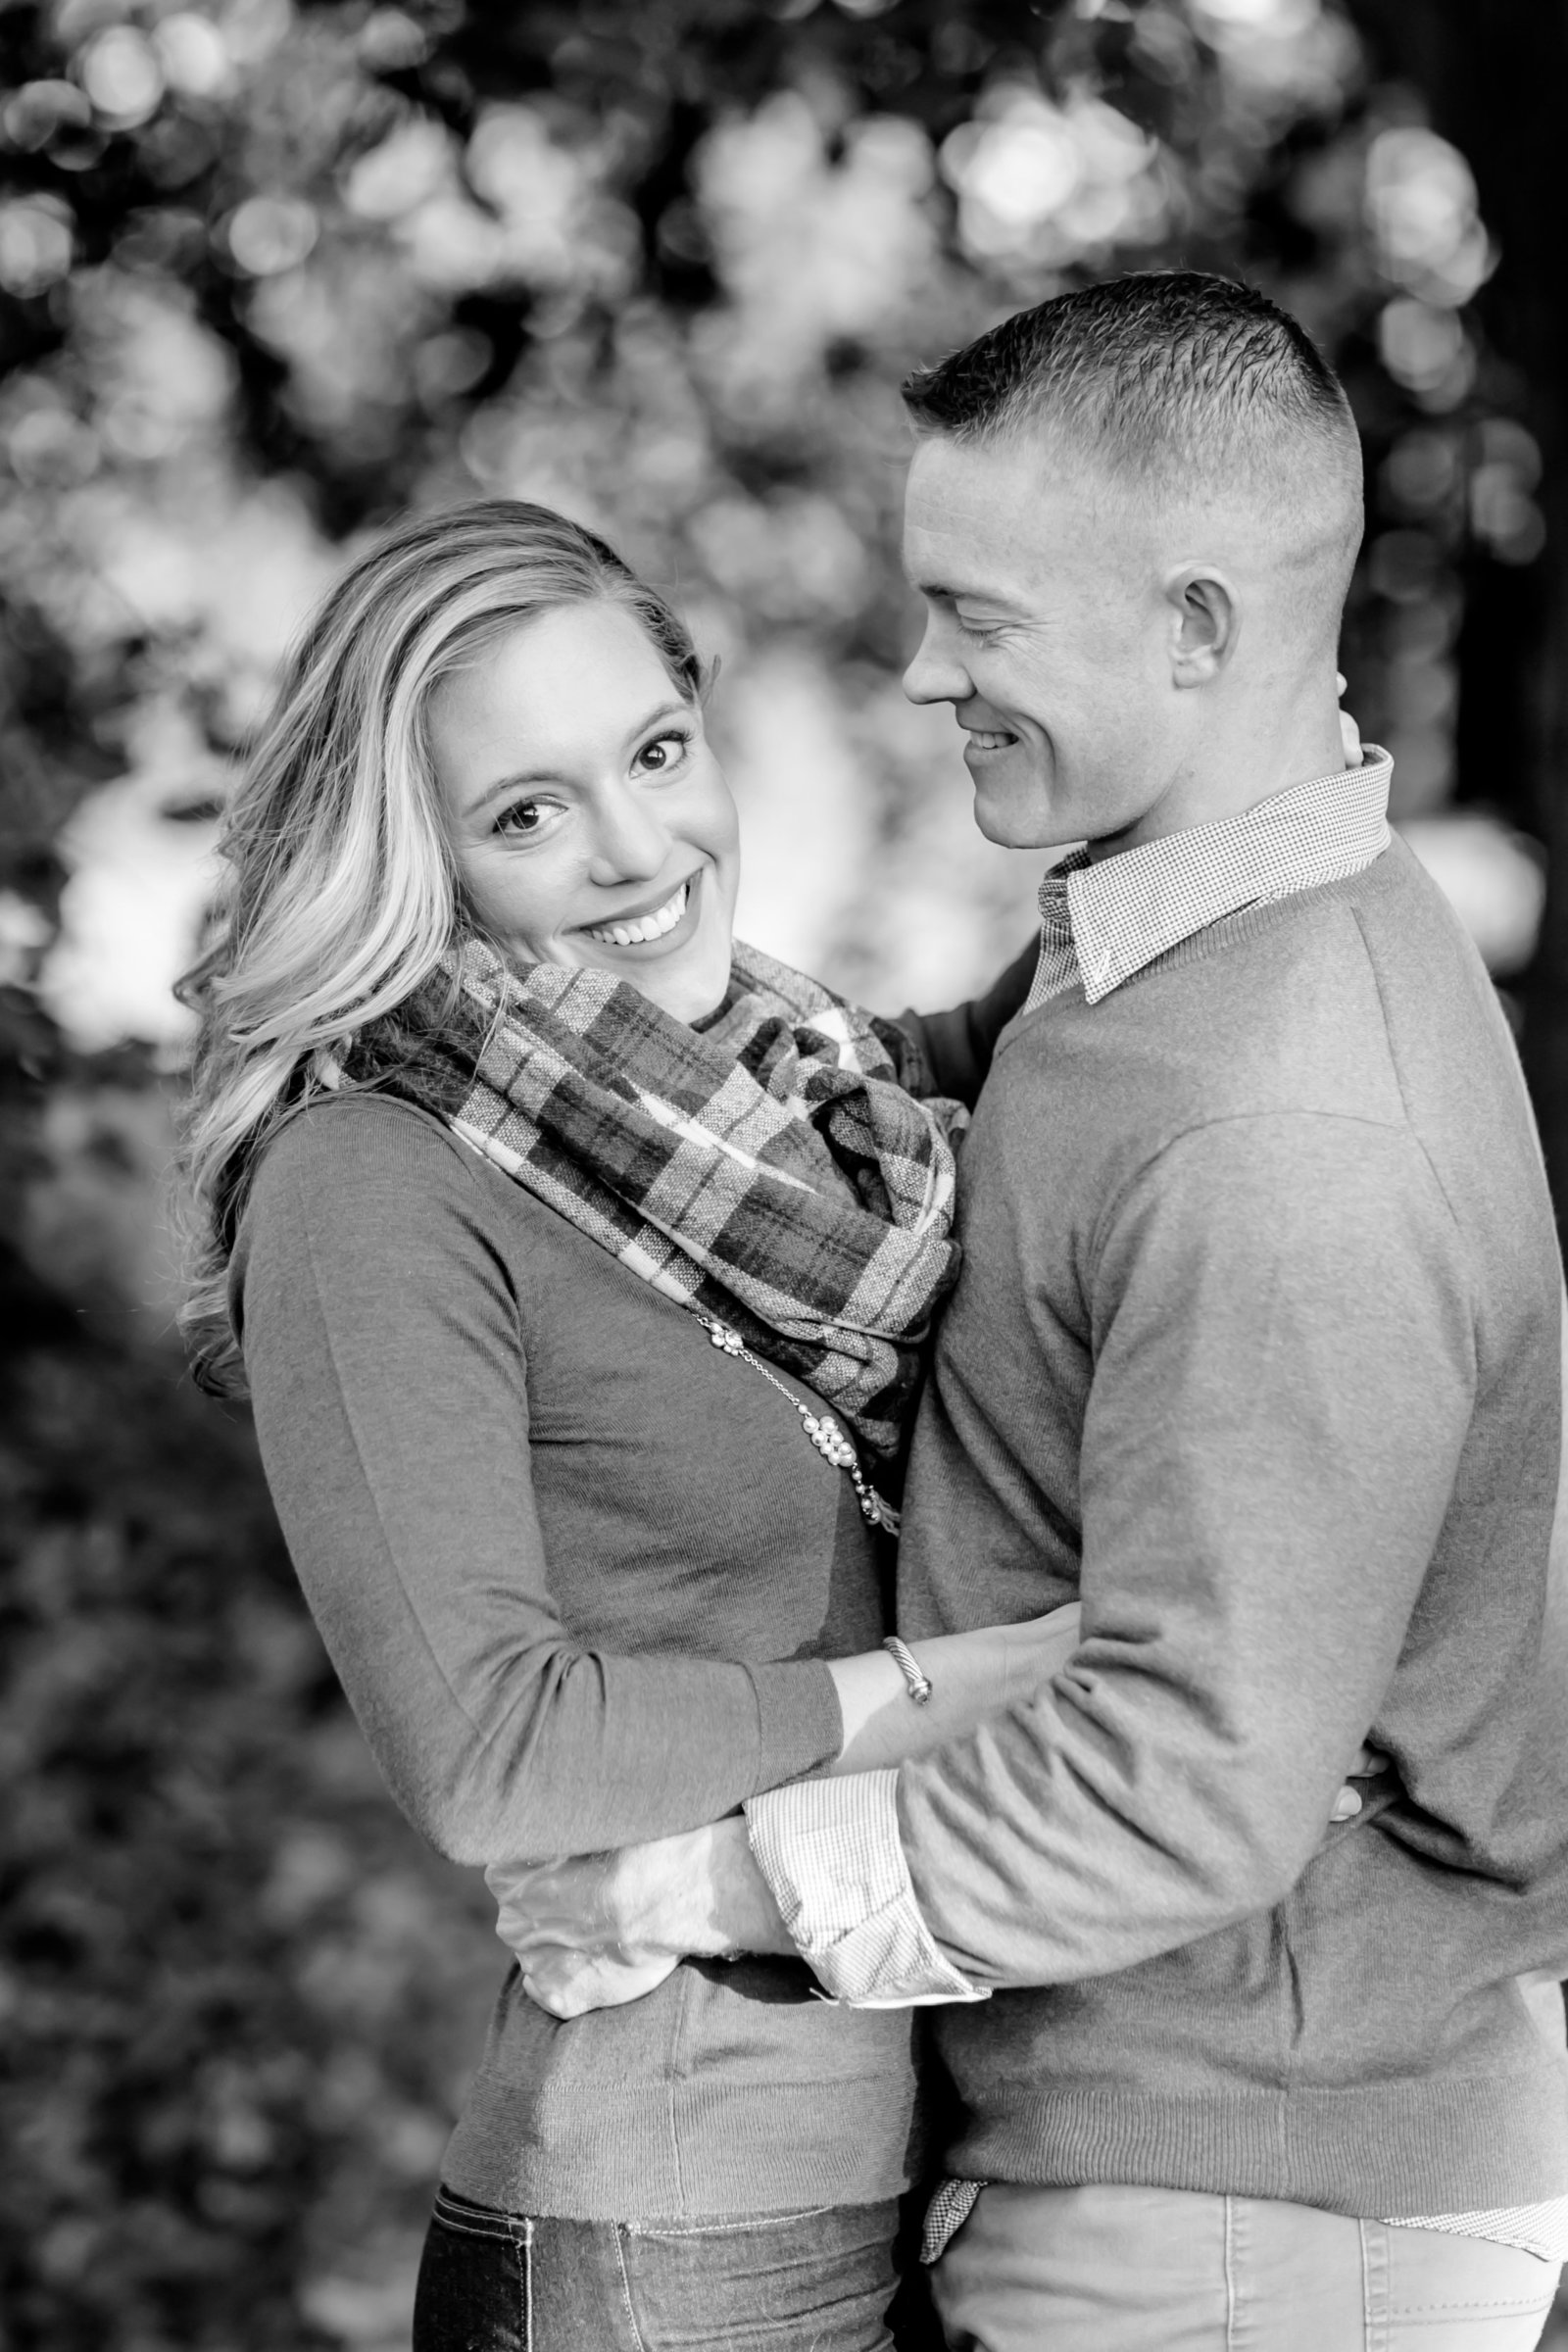 Carley Rehberg Photography - Engagement Photographer - Photo - 25